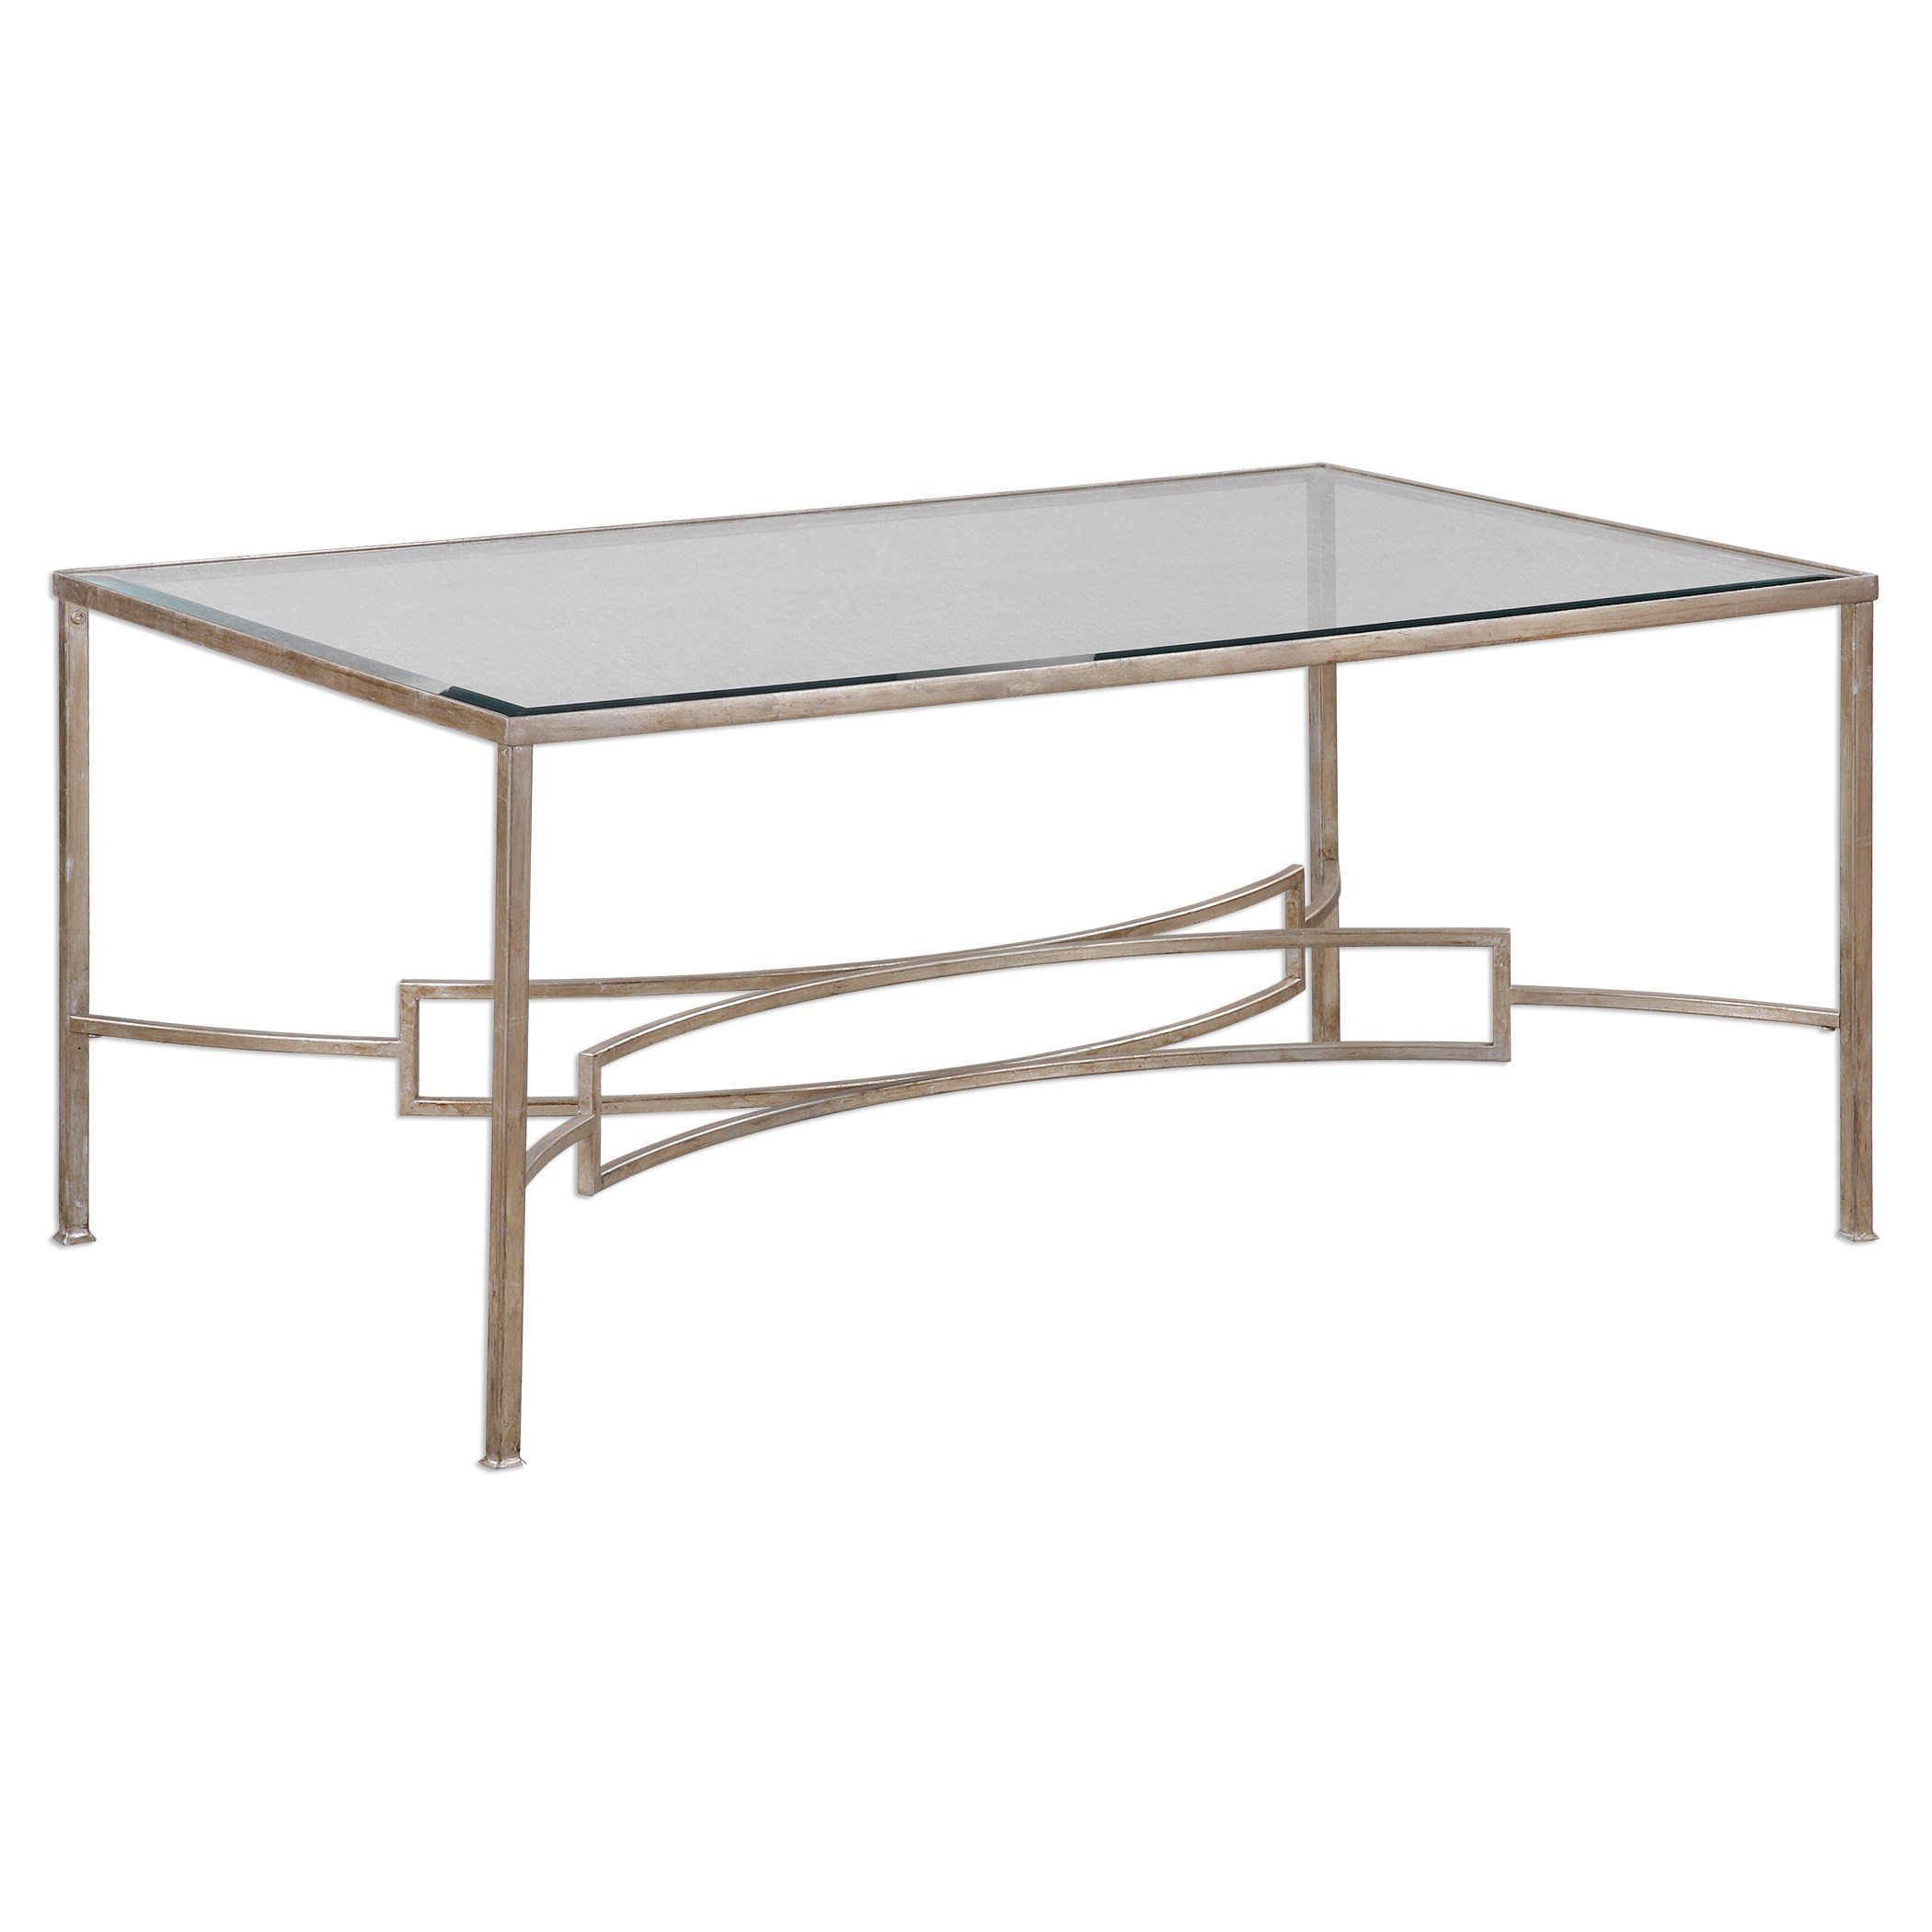 uttermost accent furniture occasional tables 24634 eilinora silver rh millerhome com